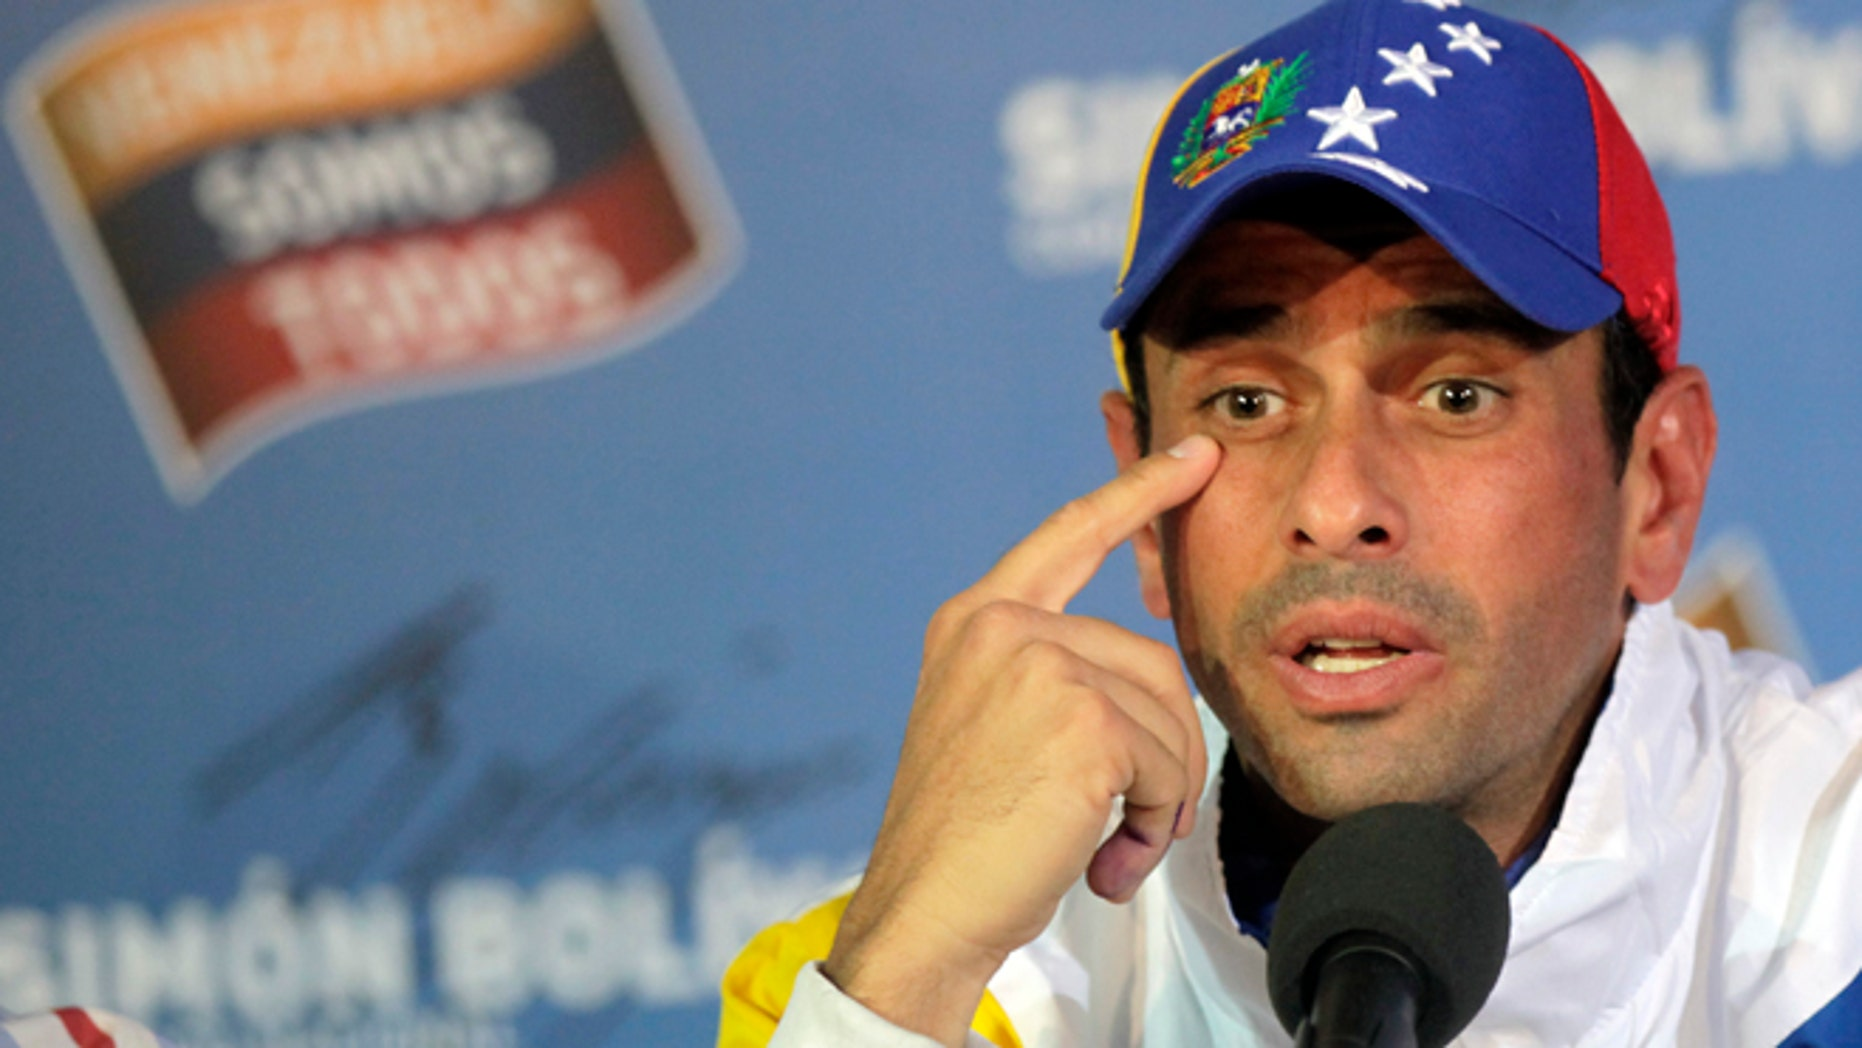 Opposition presidential candidate Henrique Capriles talks to journalists during a press conference at his campaign headquarters in Caracas, Venezuela, Tuesday, April 16, 2013.  (AP Photo/Ramon Espinosa)